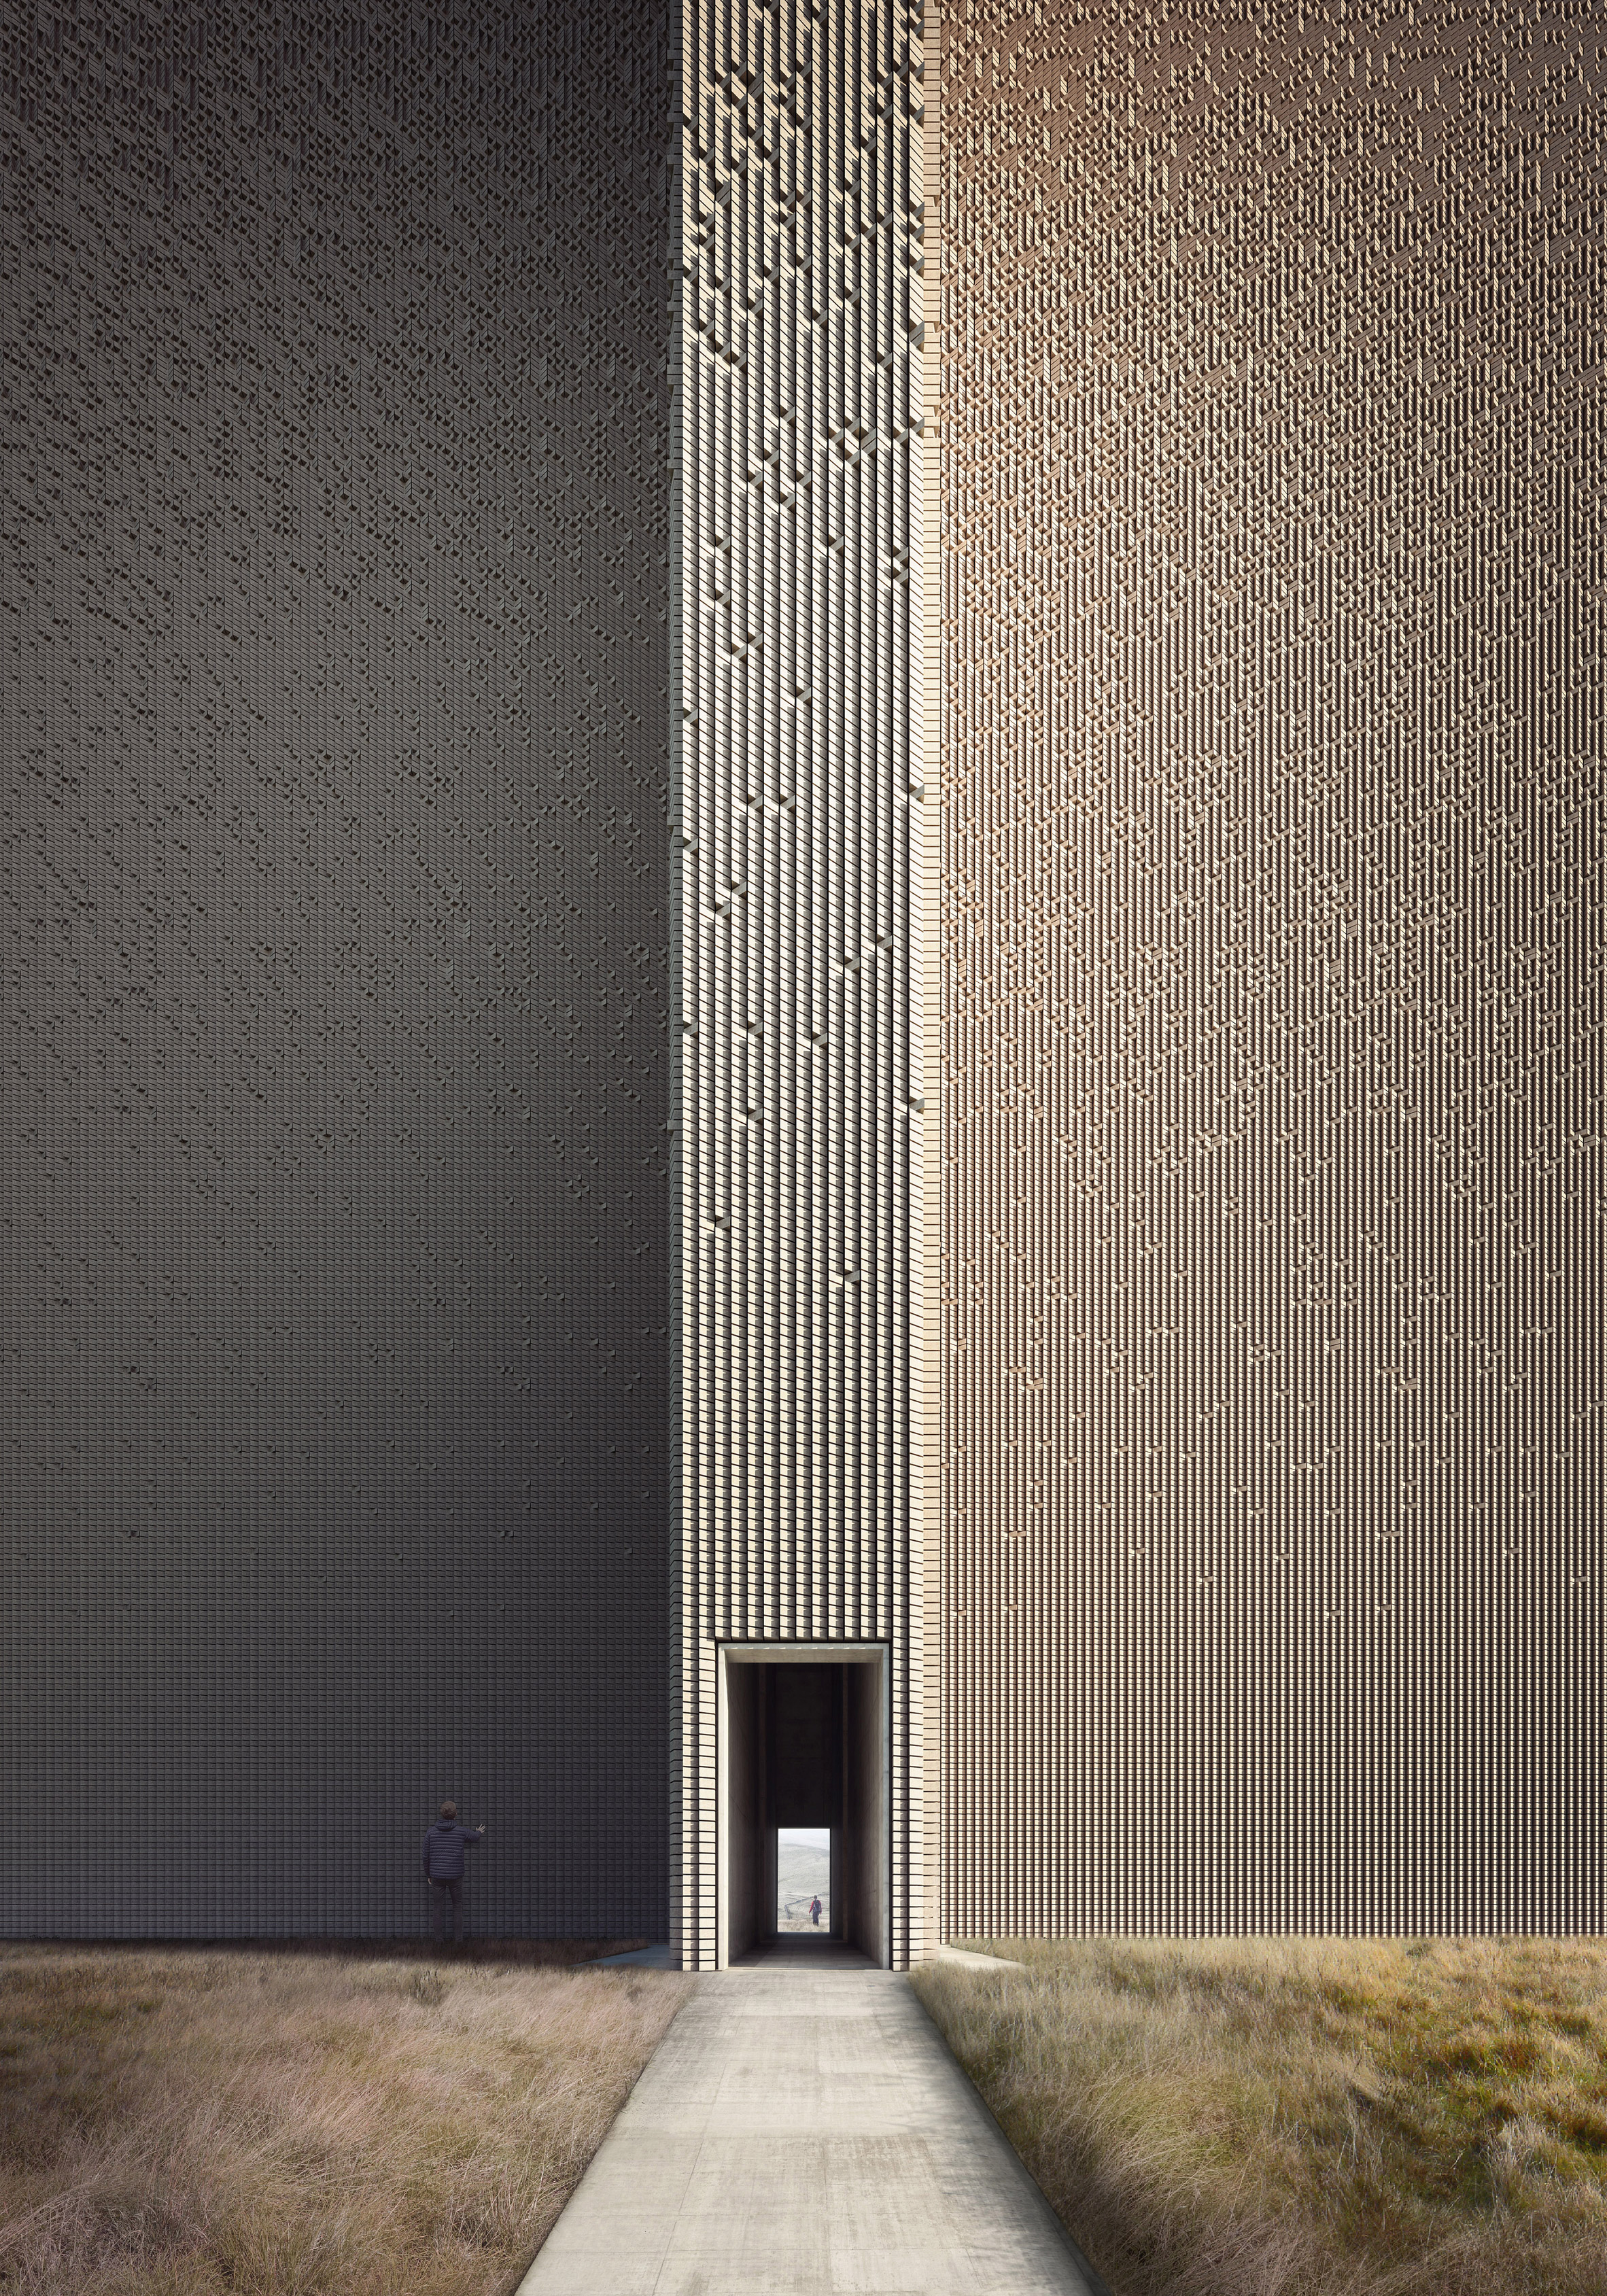 Giles Miller and Forbes Massie imagine towering monument with walls of offset bricks